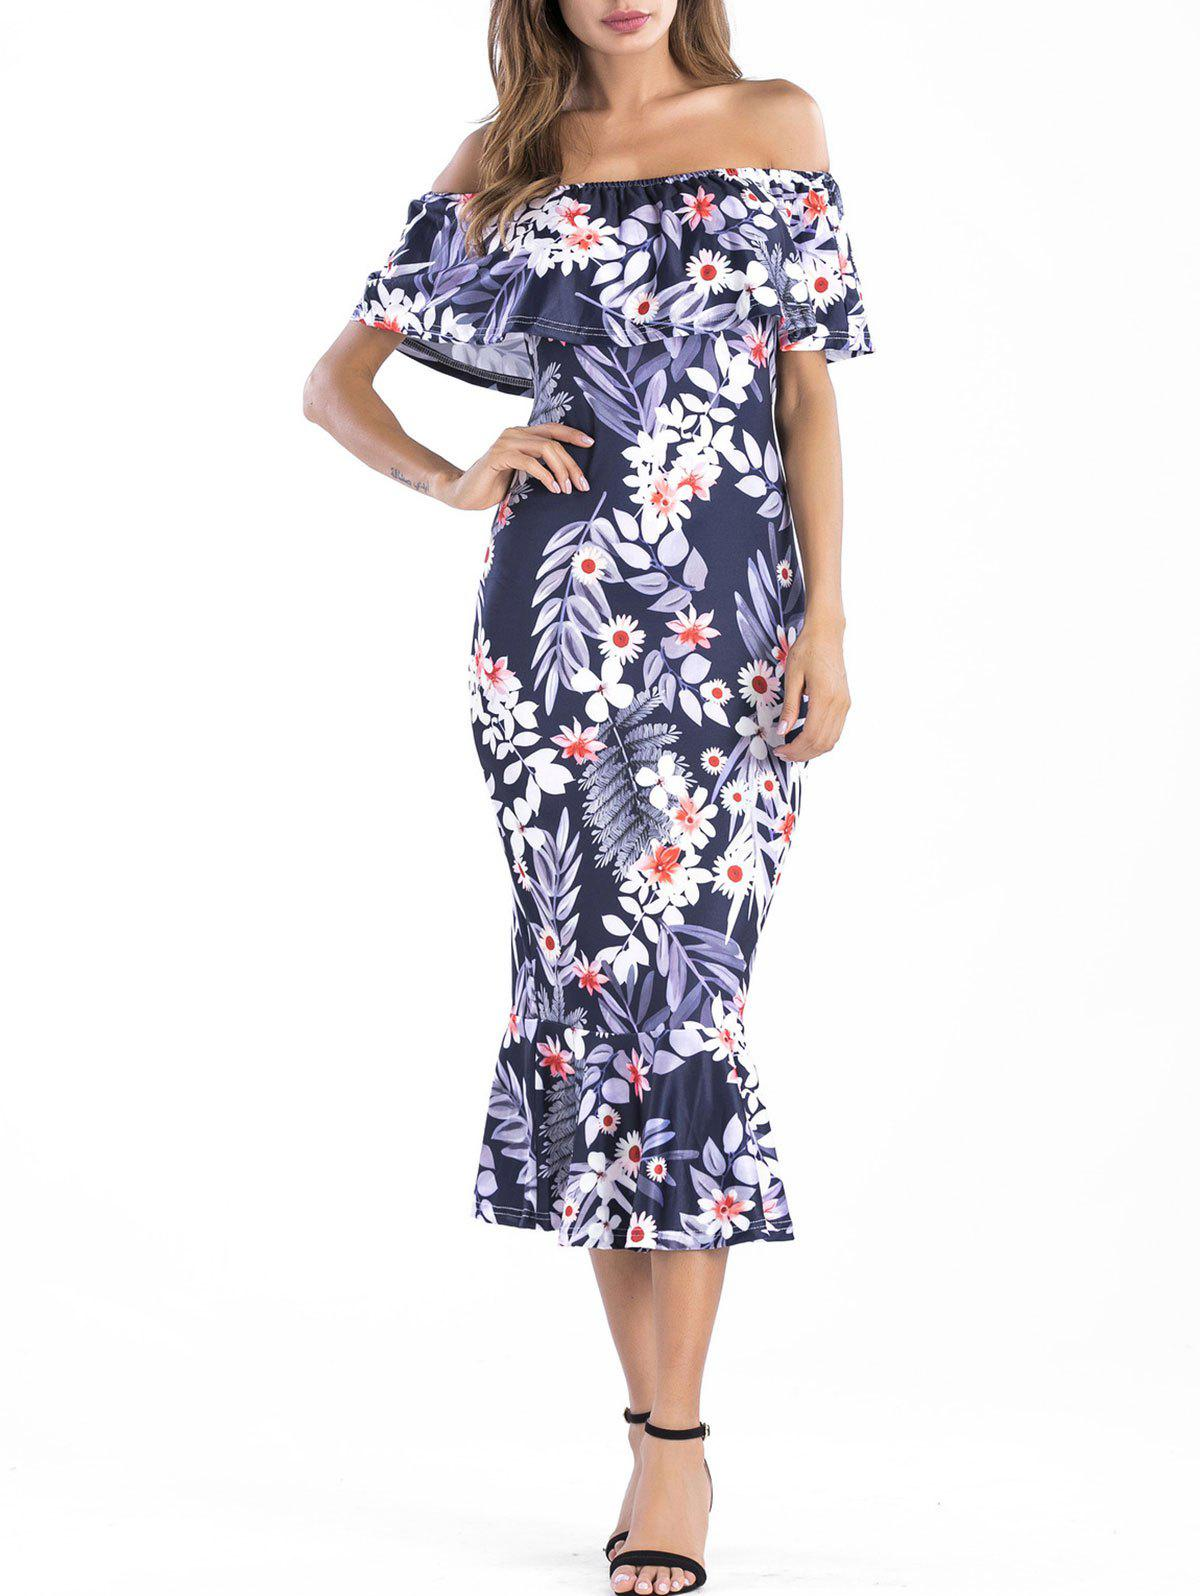 Fashion Off The Shoulder Ruffle Insert Floral Dress